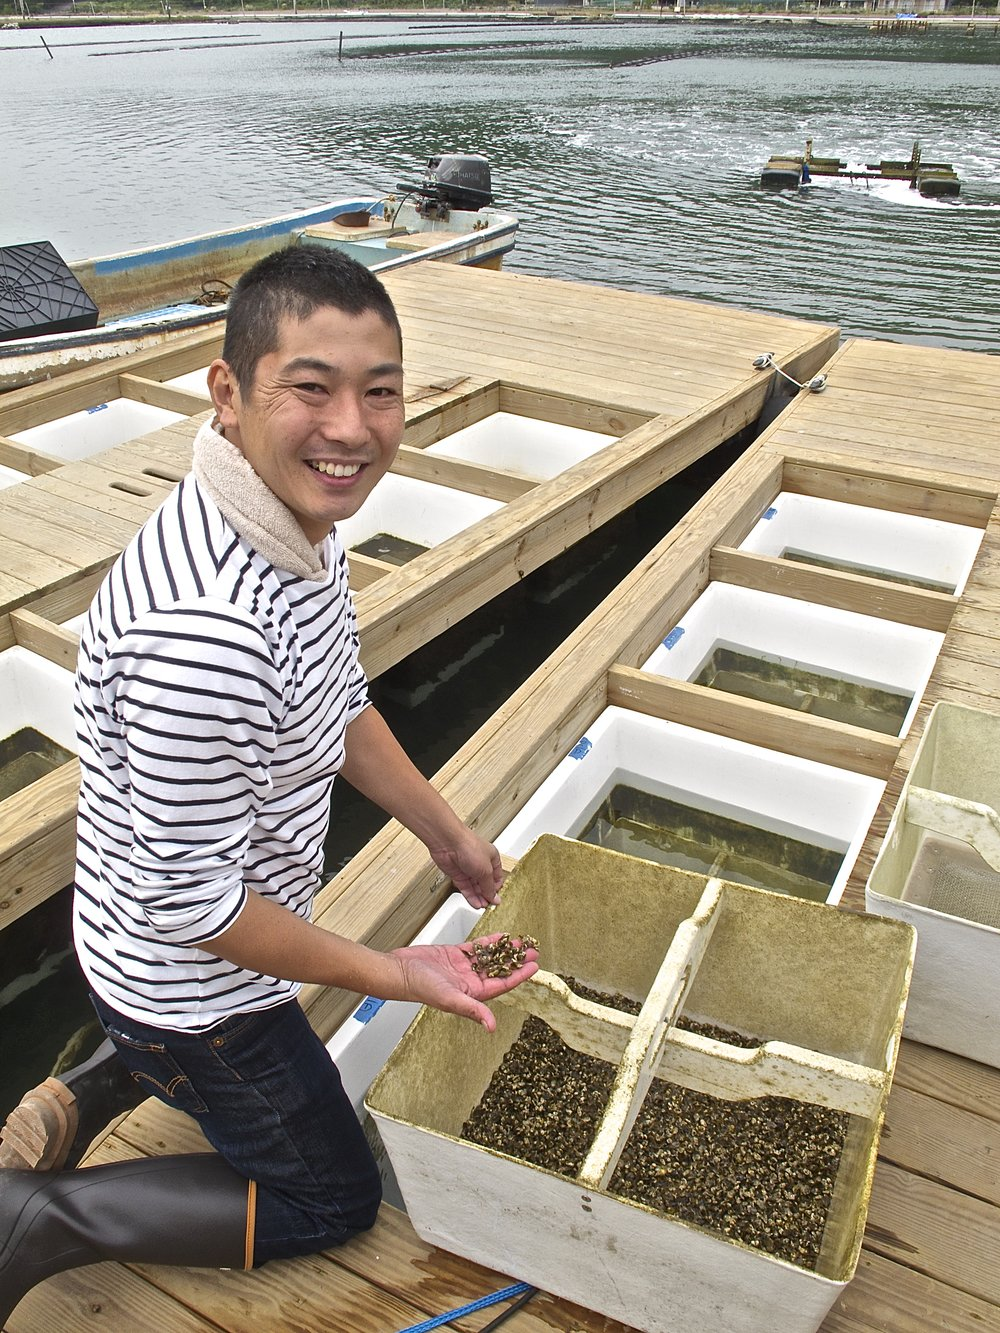 Takashi Suzuki proudly displaying his spats in October before putting them in plastic cages in the pond to mature during the winter months.